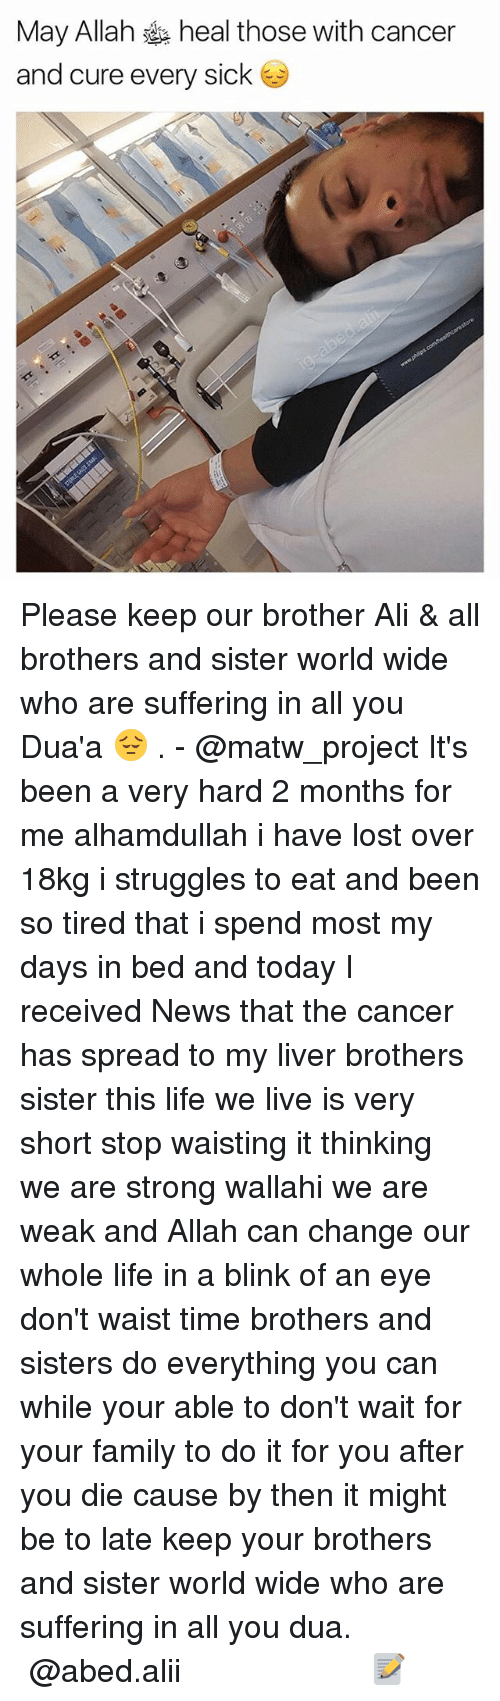 Ali, Family, and Life: May Allah heal those with cancer  and cure every sick Please keep our brother Ali & all brothers and sister world wide who are suffering in all you Dua'a 😔 . - @matw_project It's been a very hard 2 months for me alhamdullah i have lost over 18kg i struggles to eat and been so tired that i spend most my days in bed and today I received News that the cancer has spread to my liver brothers sister this life we live is very short stop waisting it thinking we are strong wallahi we are weak and Allah can change our whole life in a blink of an eye don't waist time brothers and sisters do everything you can while your able to don't wait for your family to do it for you after you die cause by then it might be to late keep your brothers and sister world wide who are suffering in all you dua. ▃▃▃▃▃▃▃▃▃▃▃▃▃▃▃▃▃▃▃▃ @abed.alii 📝